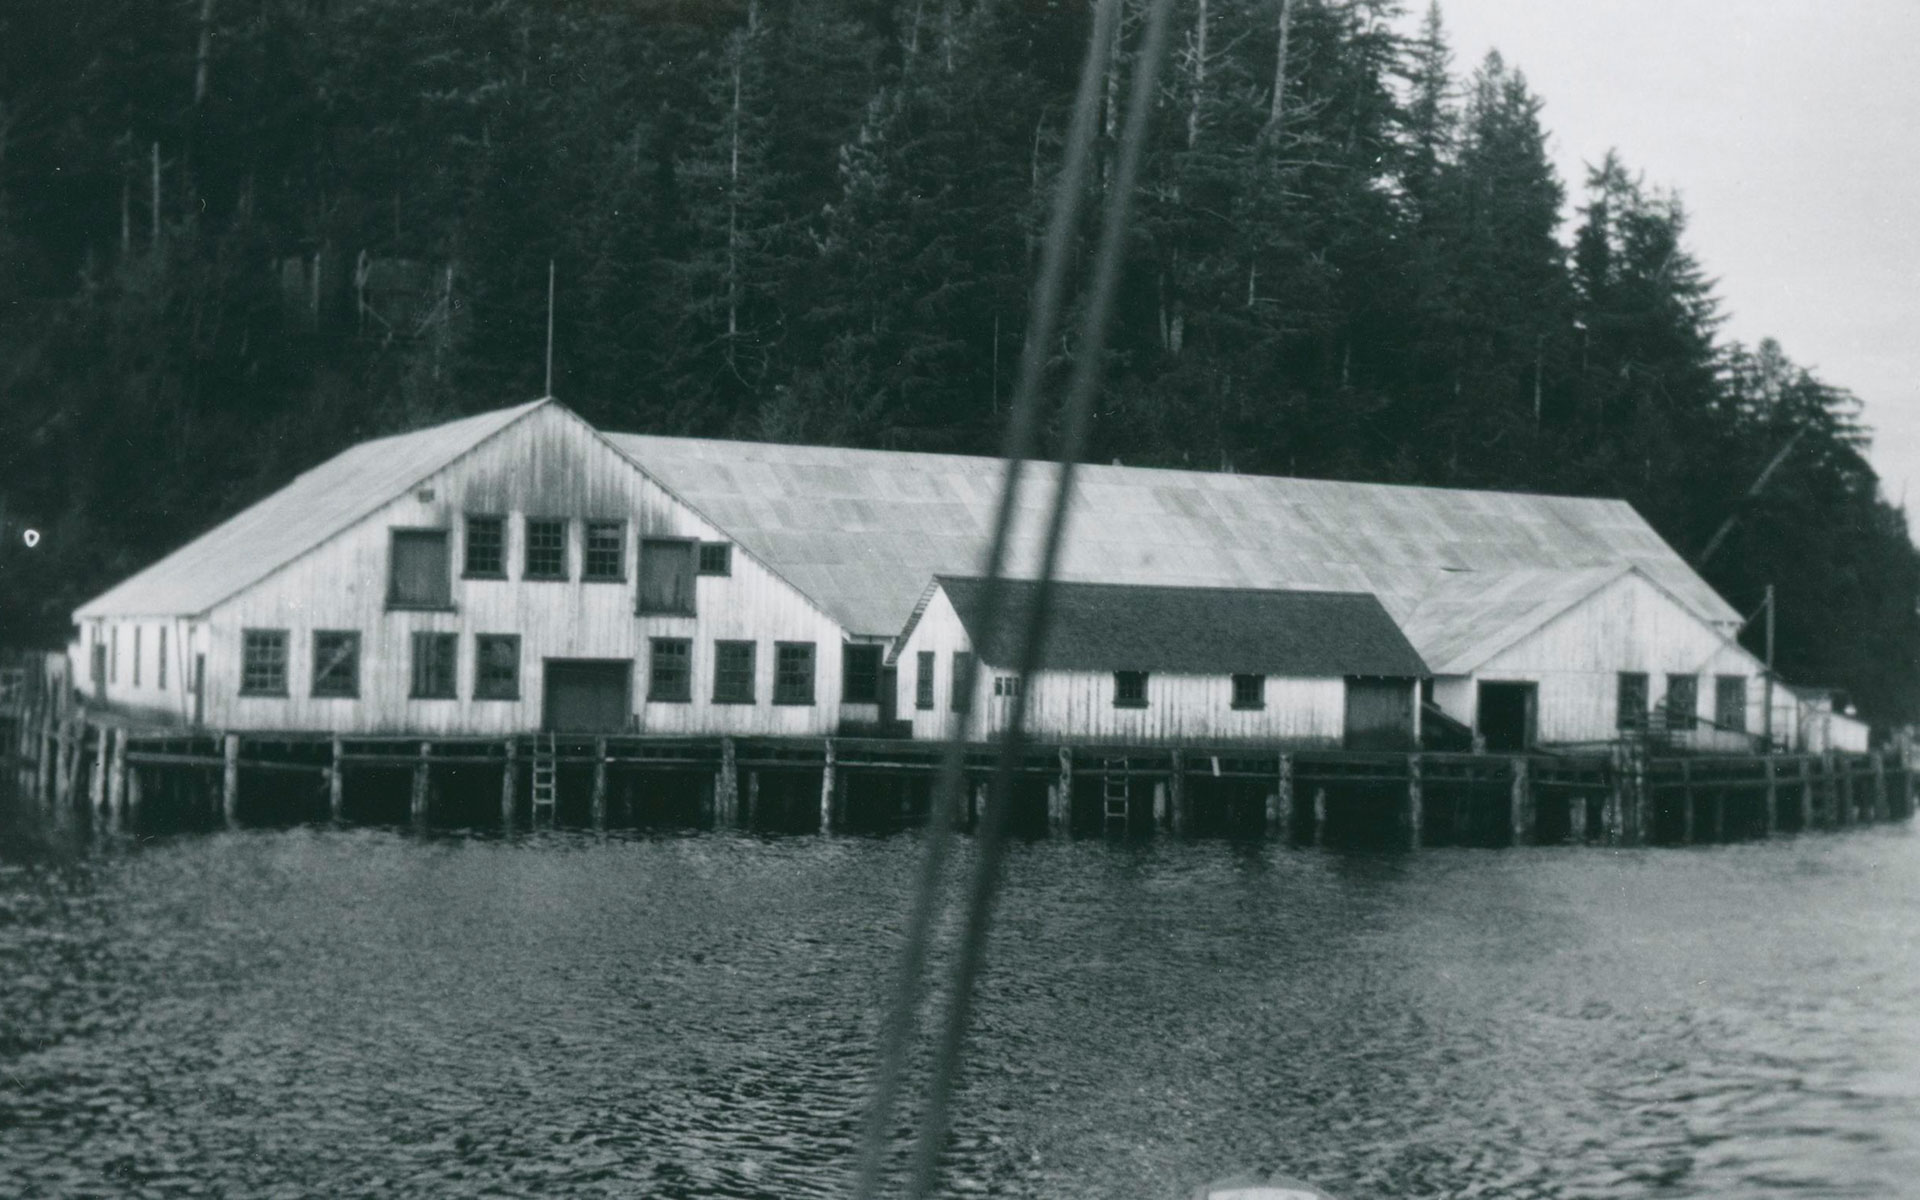 Shushartie Cannery buildings photographed from a boat on the water. Two ropes, part of the rigging of a boat, are visible in the foreground. The cannery sits at the waters edge with a wooden hill behind it.